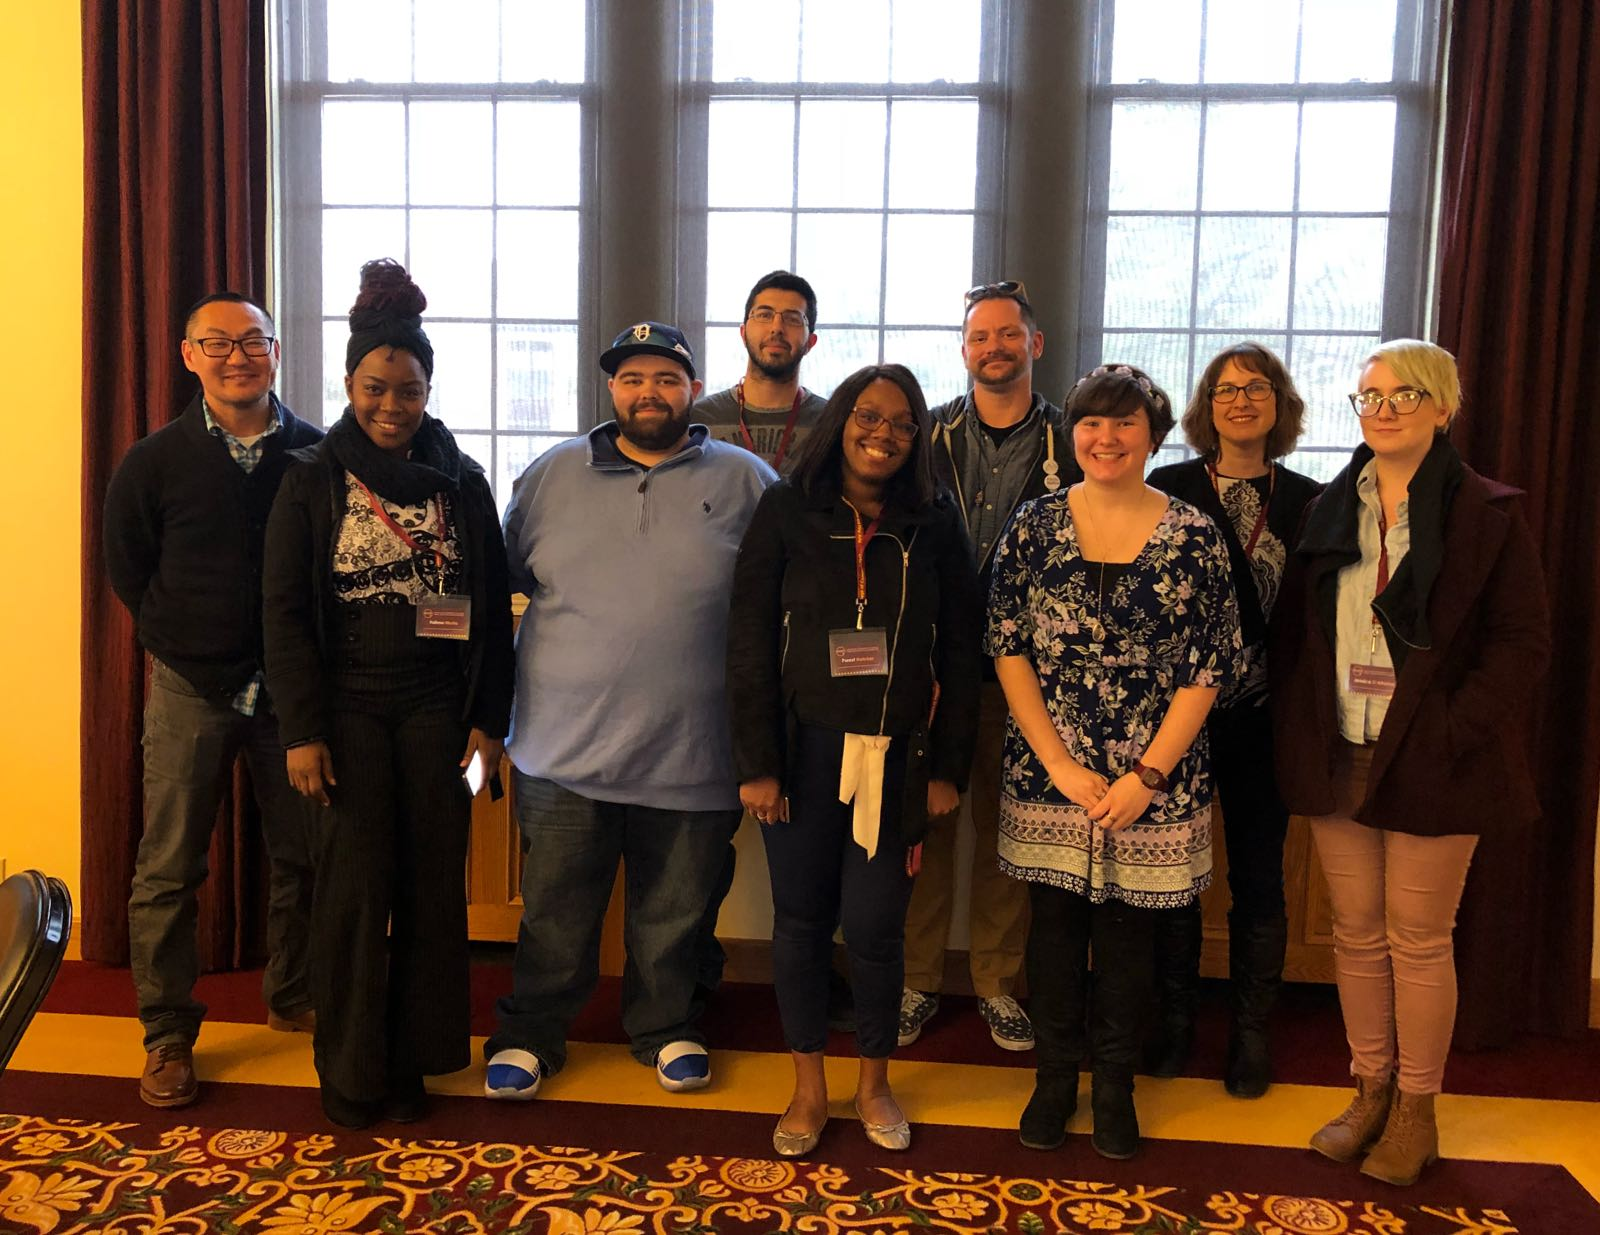 Mirror News staff pictured at 2018 MCCPA conference at Central Michigan University.